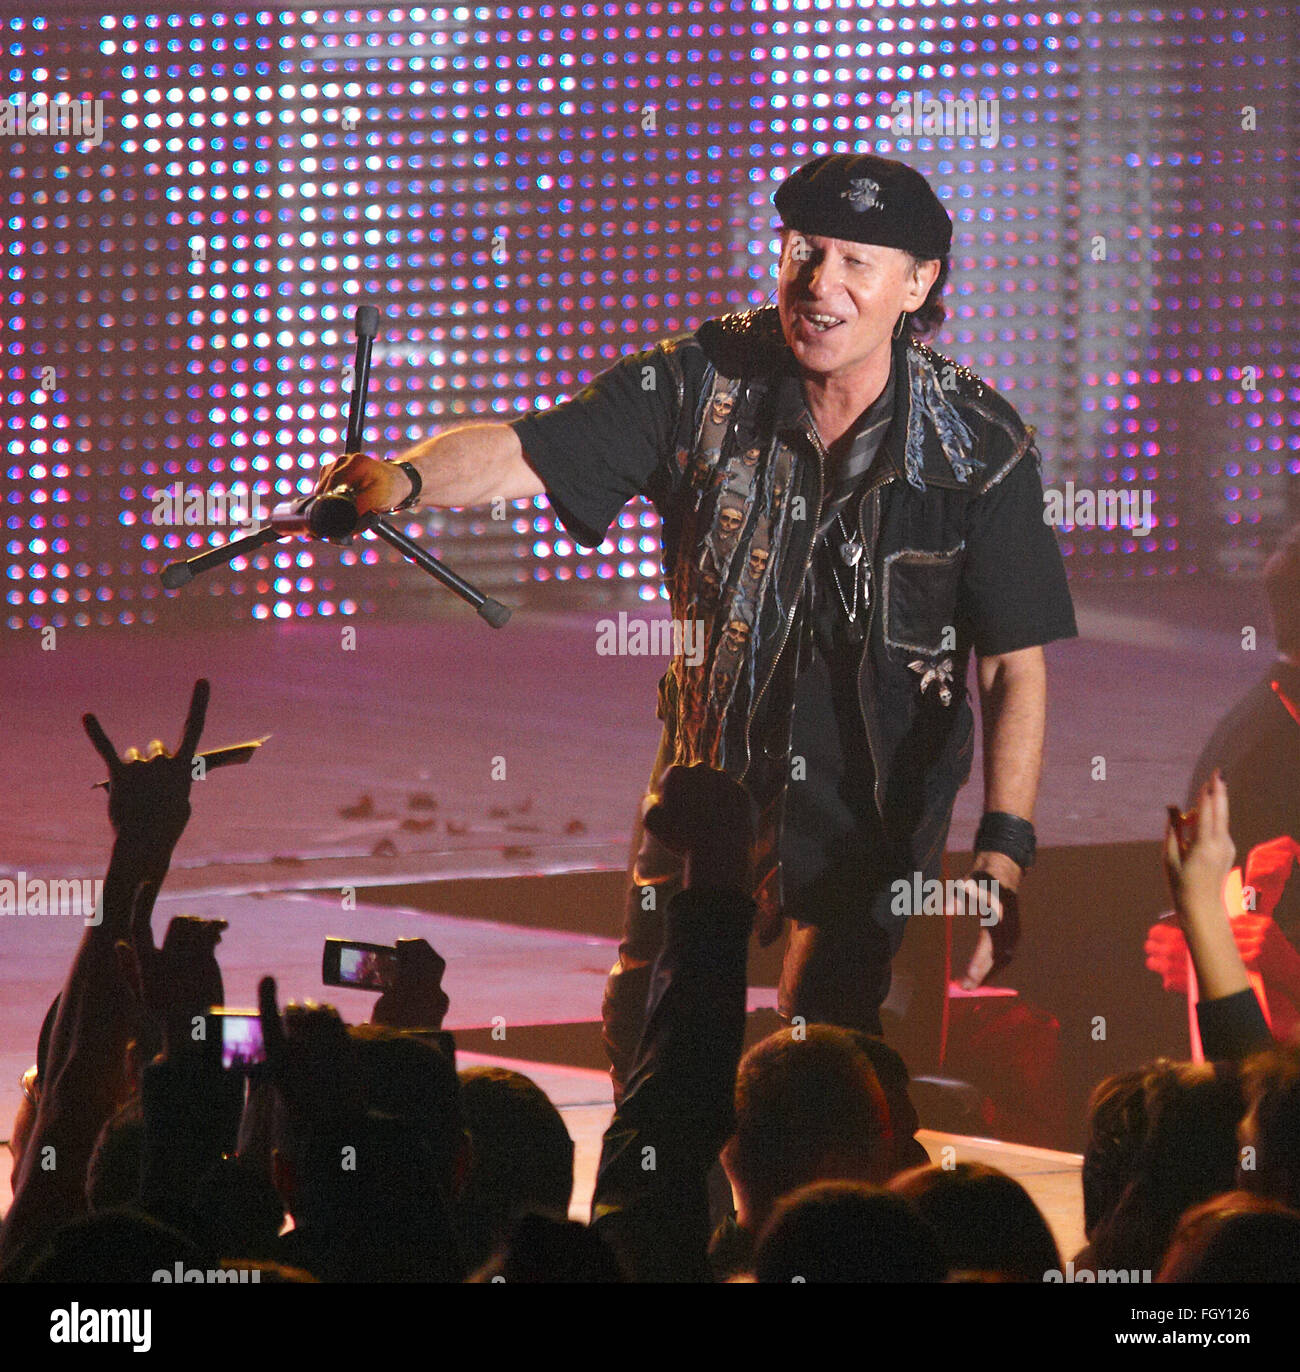 DNIPROPETROVSK, UKRAINE - OCTOBER 31, 2012: Vocalist of the Scorpions band Klaus Meine with microphone on the stage - Stock Image